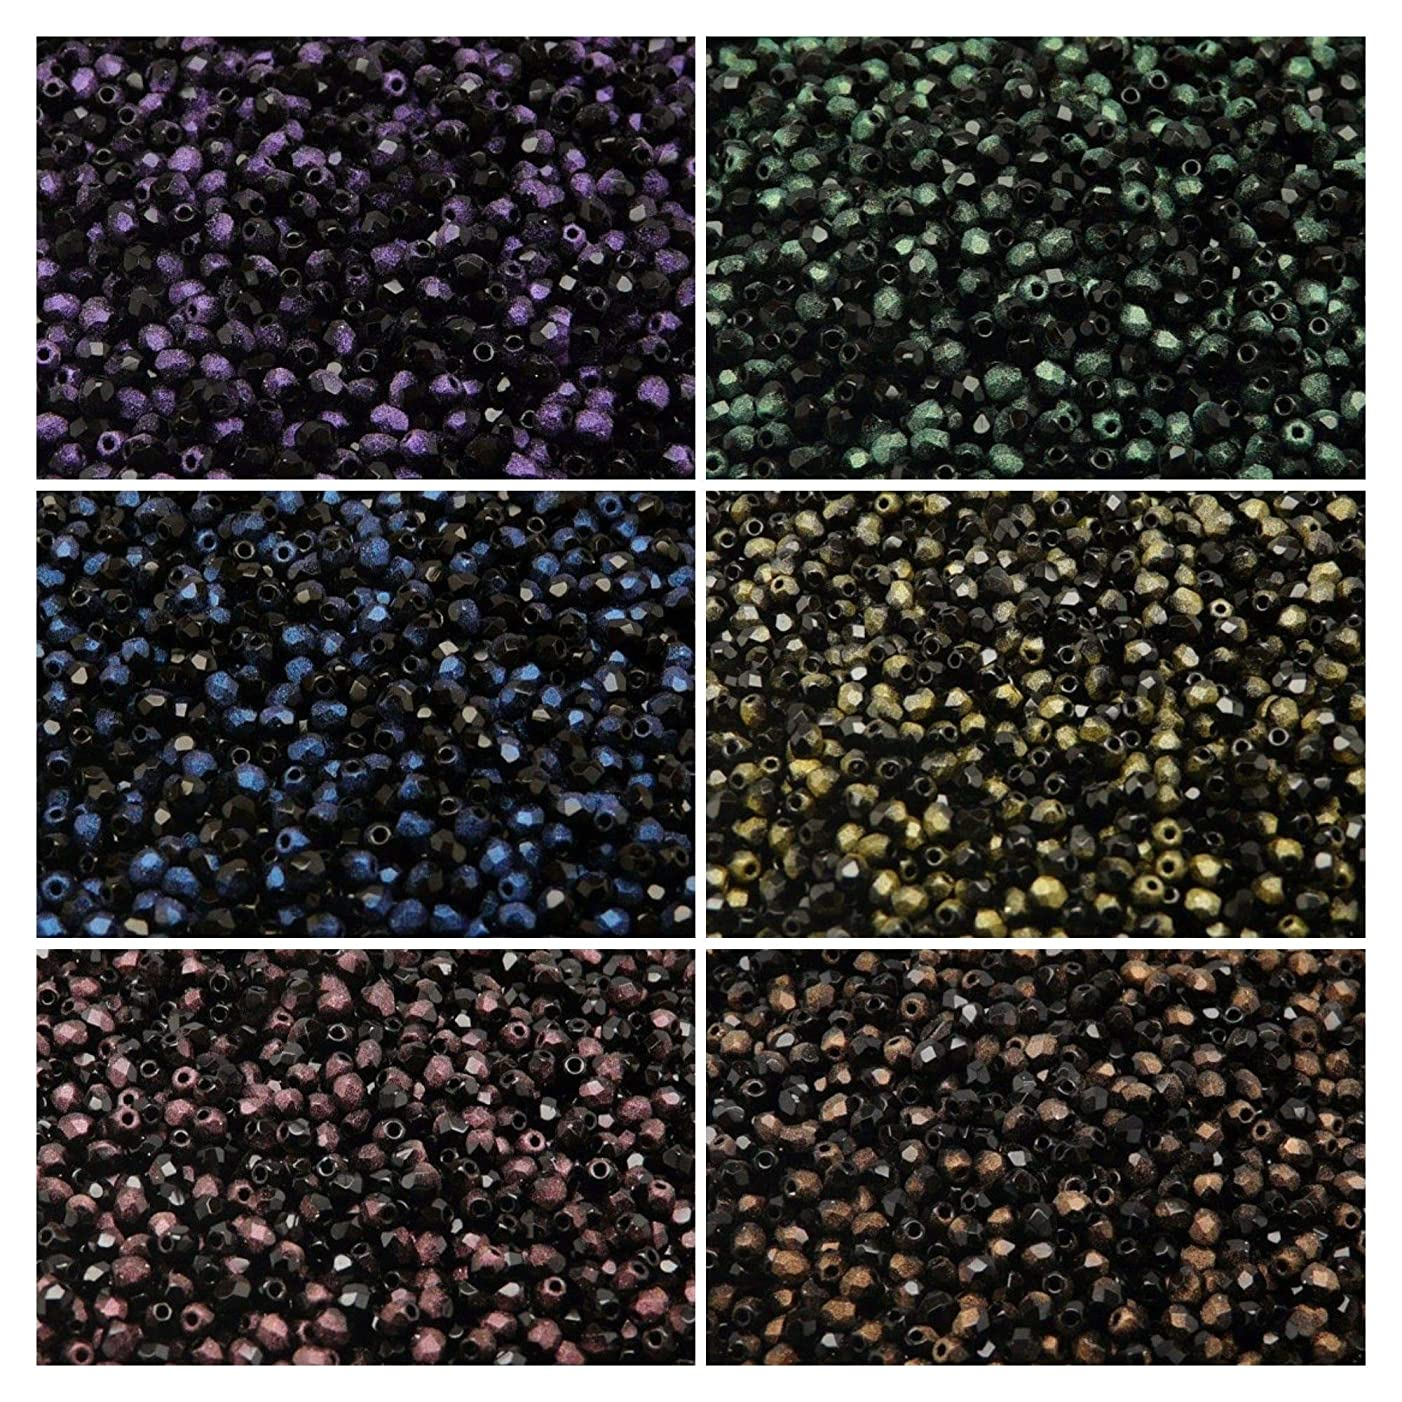 600 beads 6 colors Unique Set 307 Czech Fire-Polished Faceted Glass Beads Round 3 mm, 3FP052 3FP053 3FP054 3FP055 3FP056 3FP057